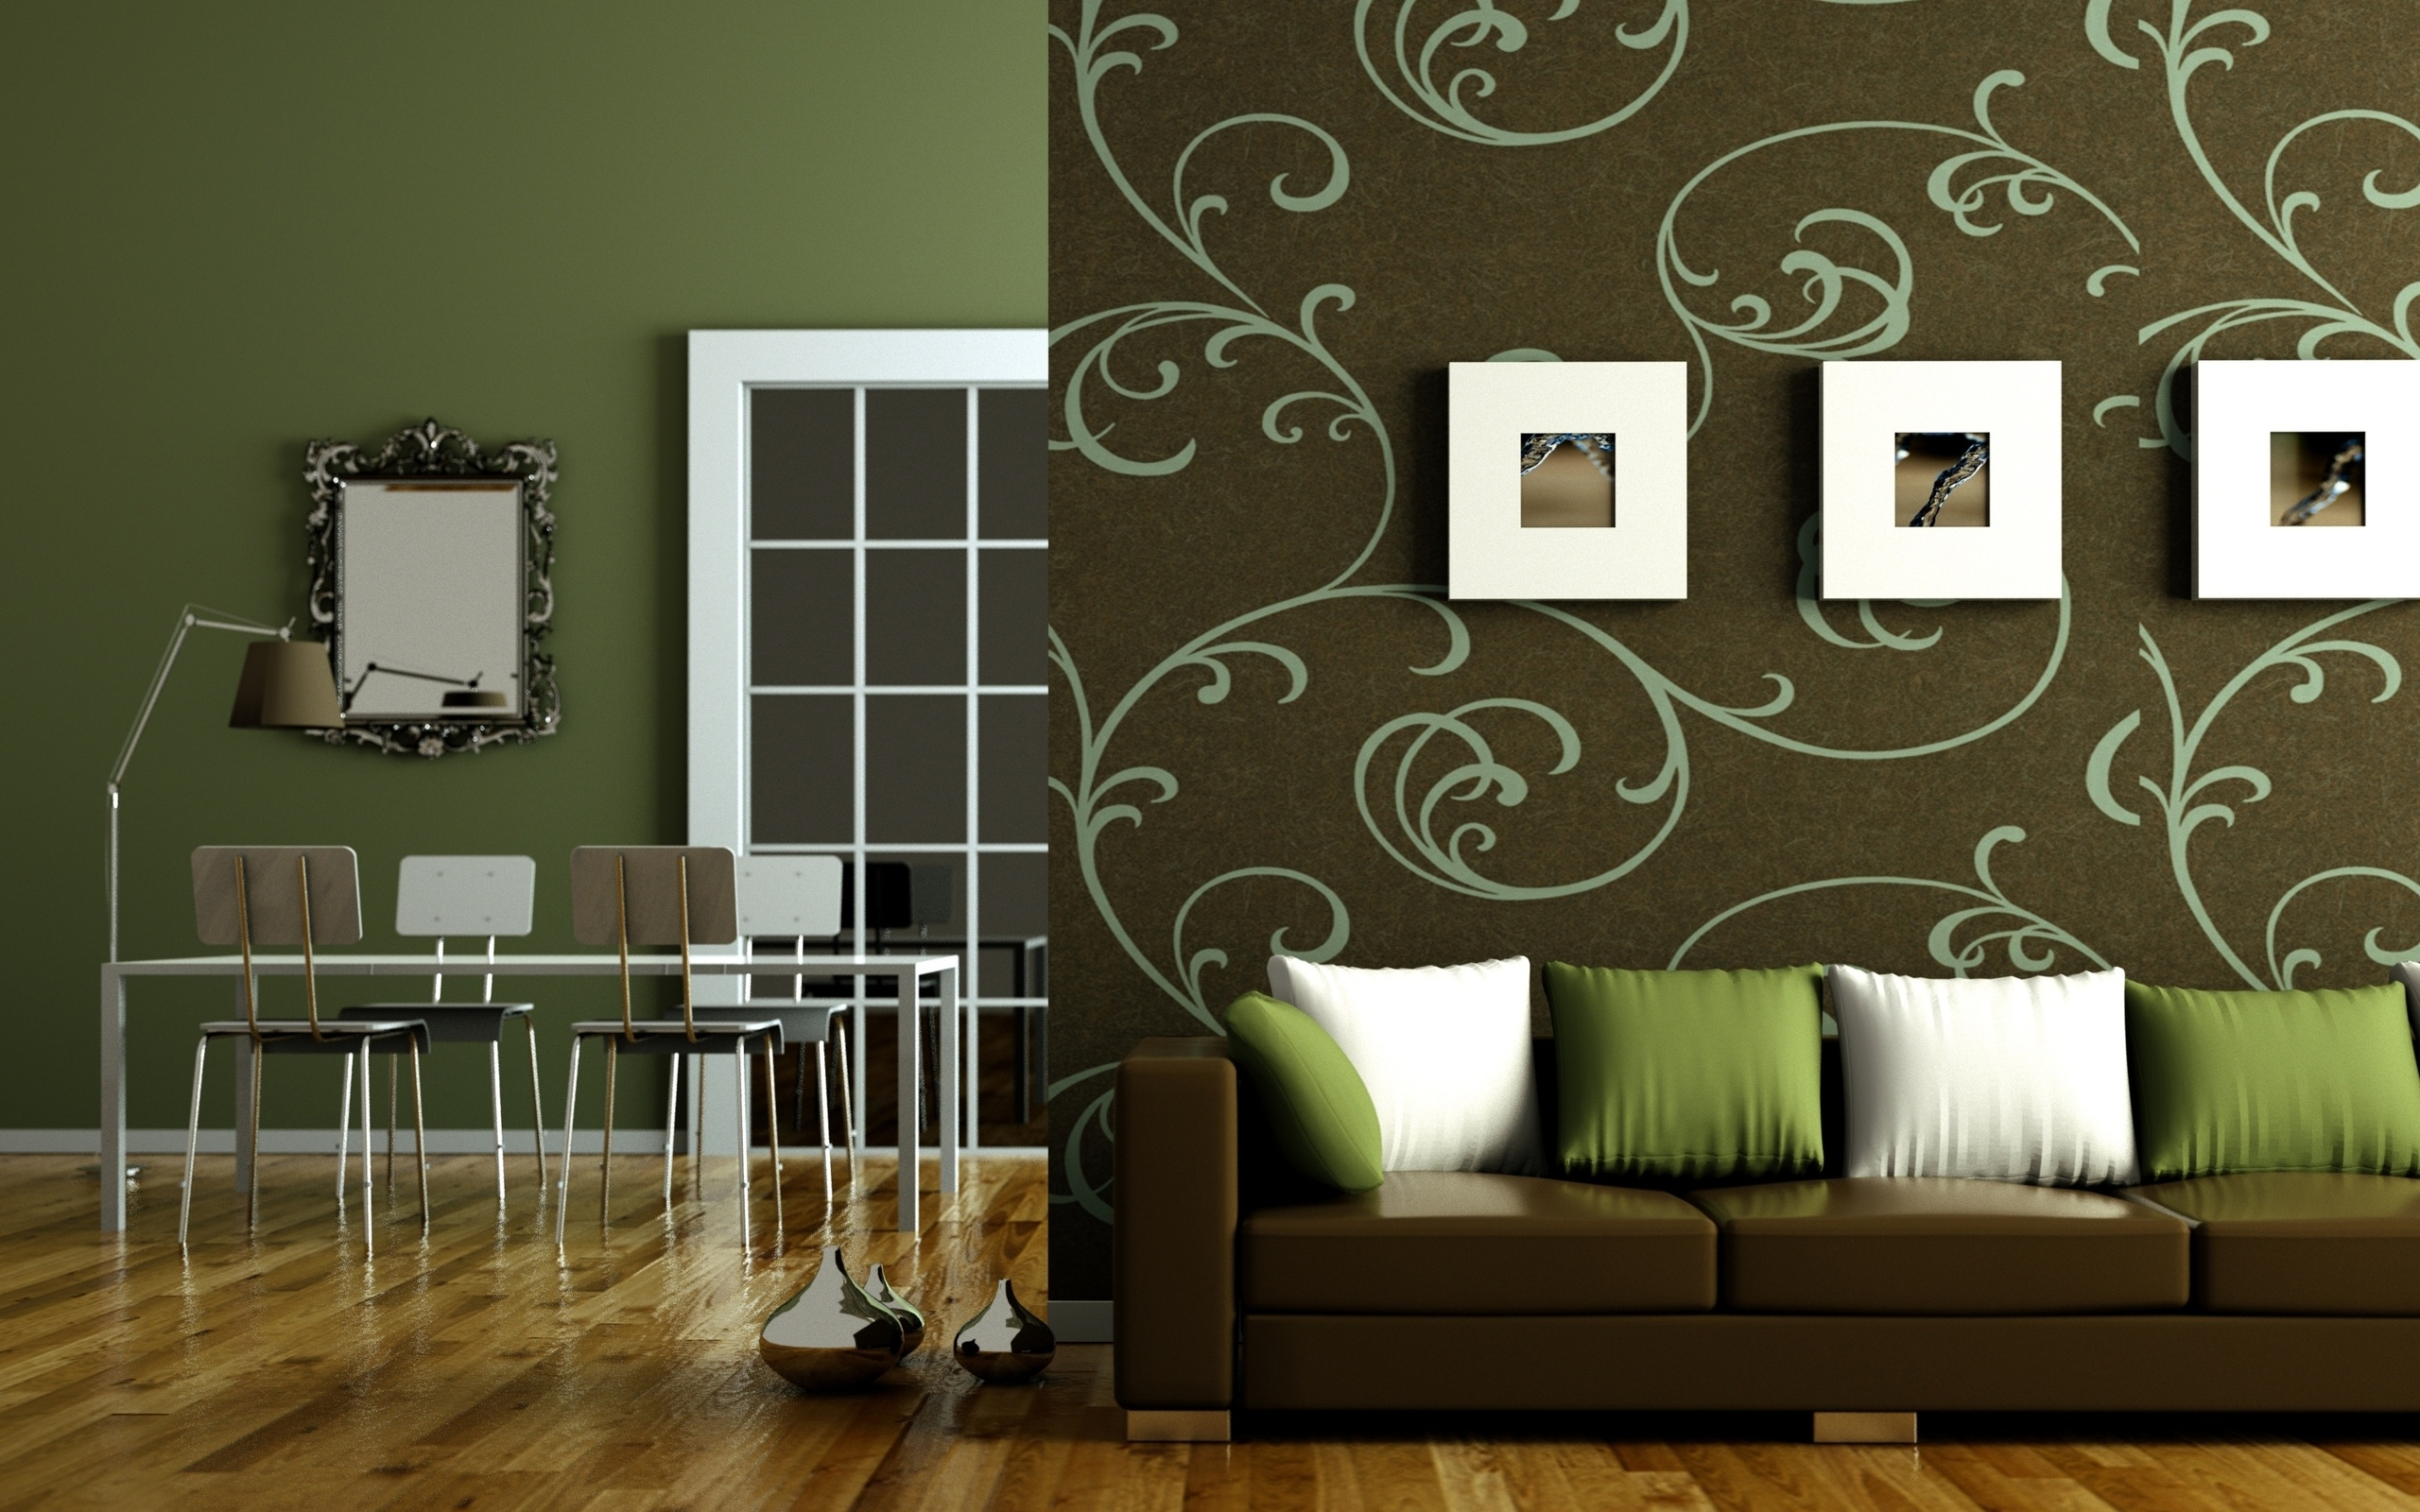 Flat Interior Design Wallpapers 2560x1600 1122607 2560x1600